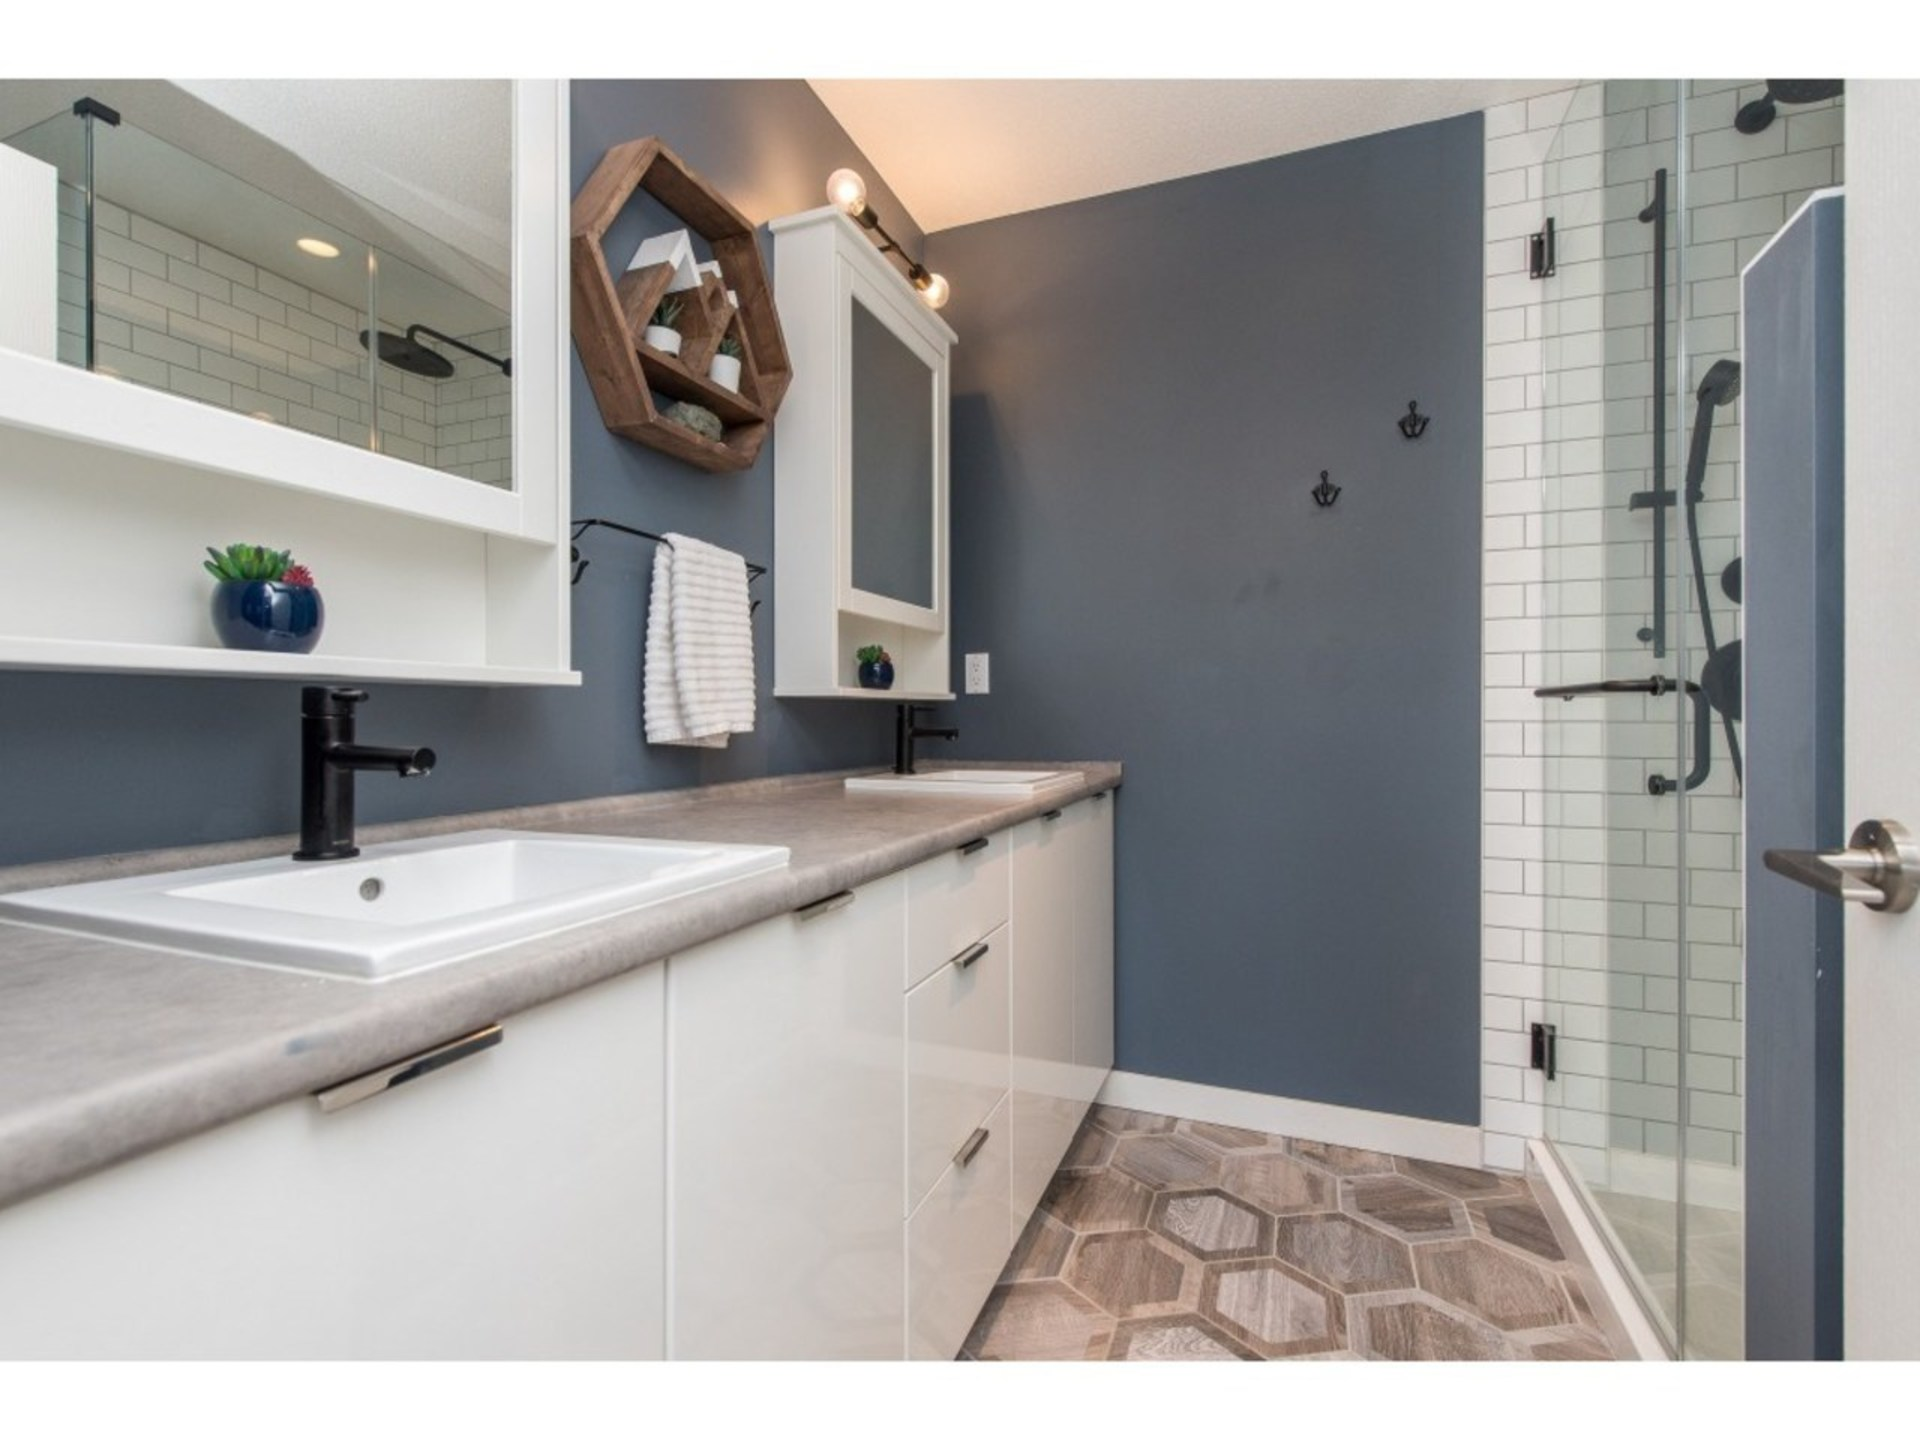 Stunning ensuite with beautiful heated tile flooring and new shower at 94 - 30989 Westridge Place, Abbotsford West, Abbotsford